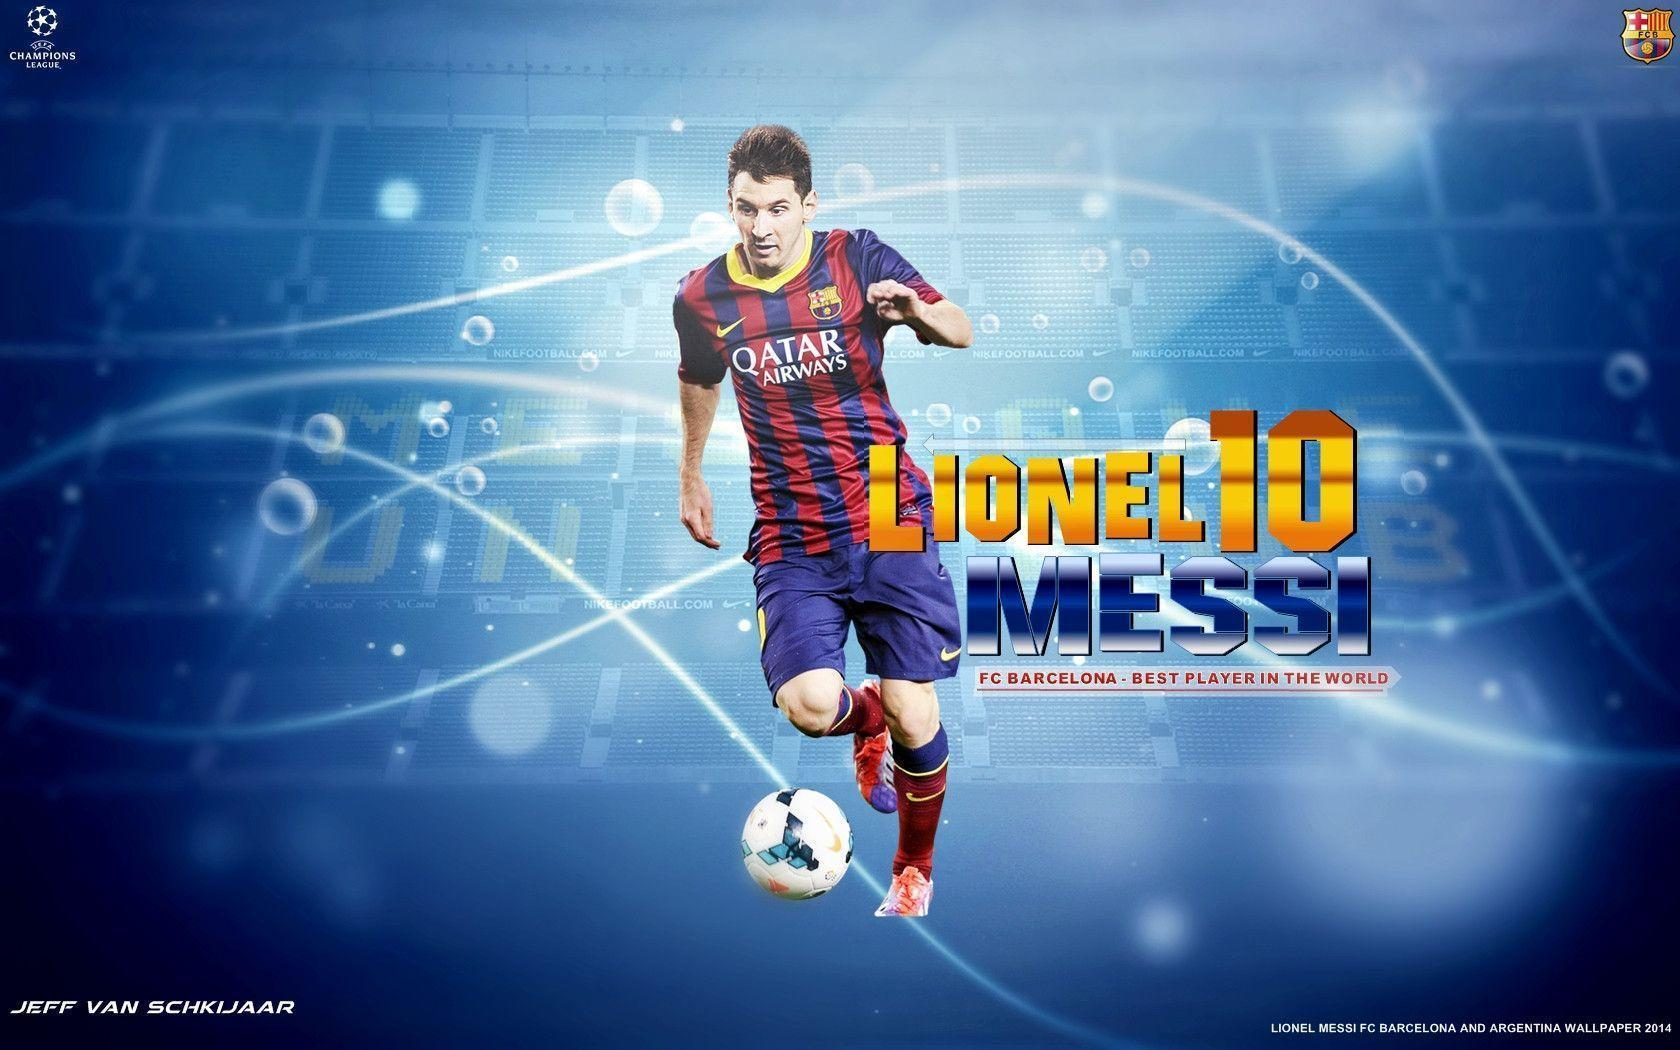 Lionel Messi Wallpapers - Wallpaper Cave